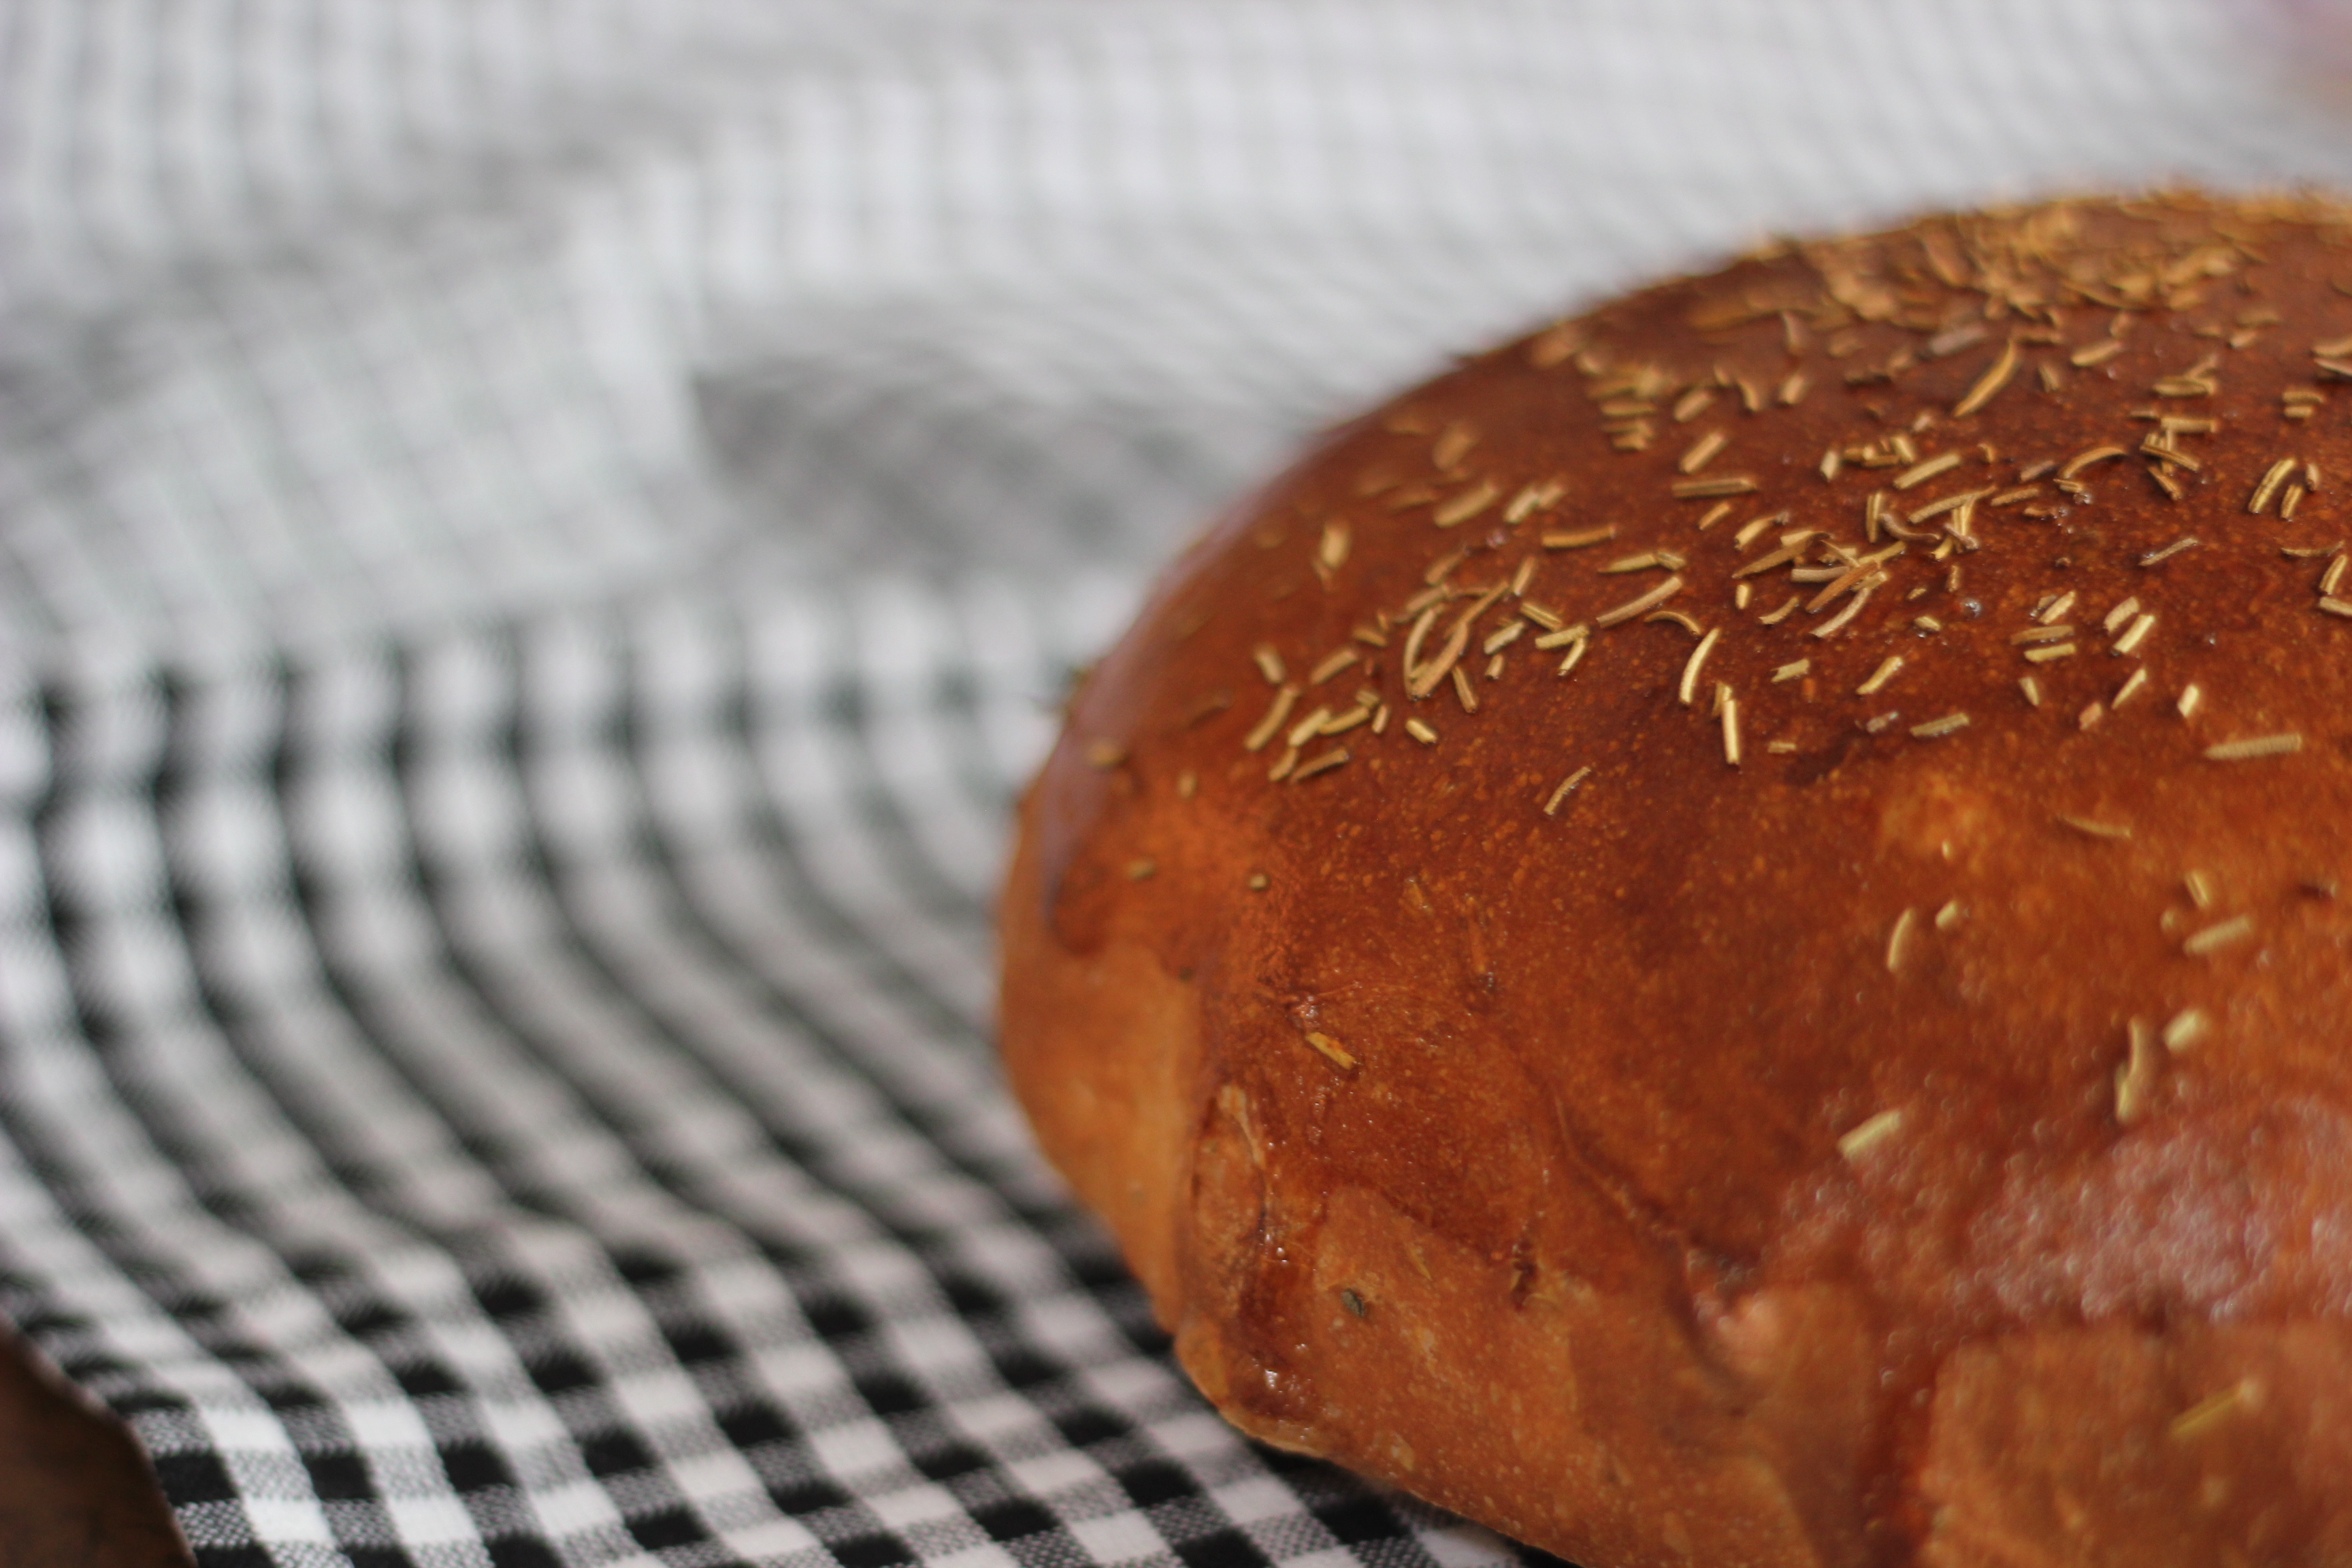 rosemary olive oil bread with chili